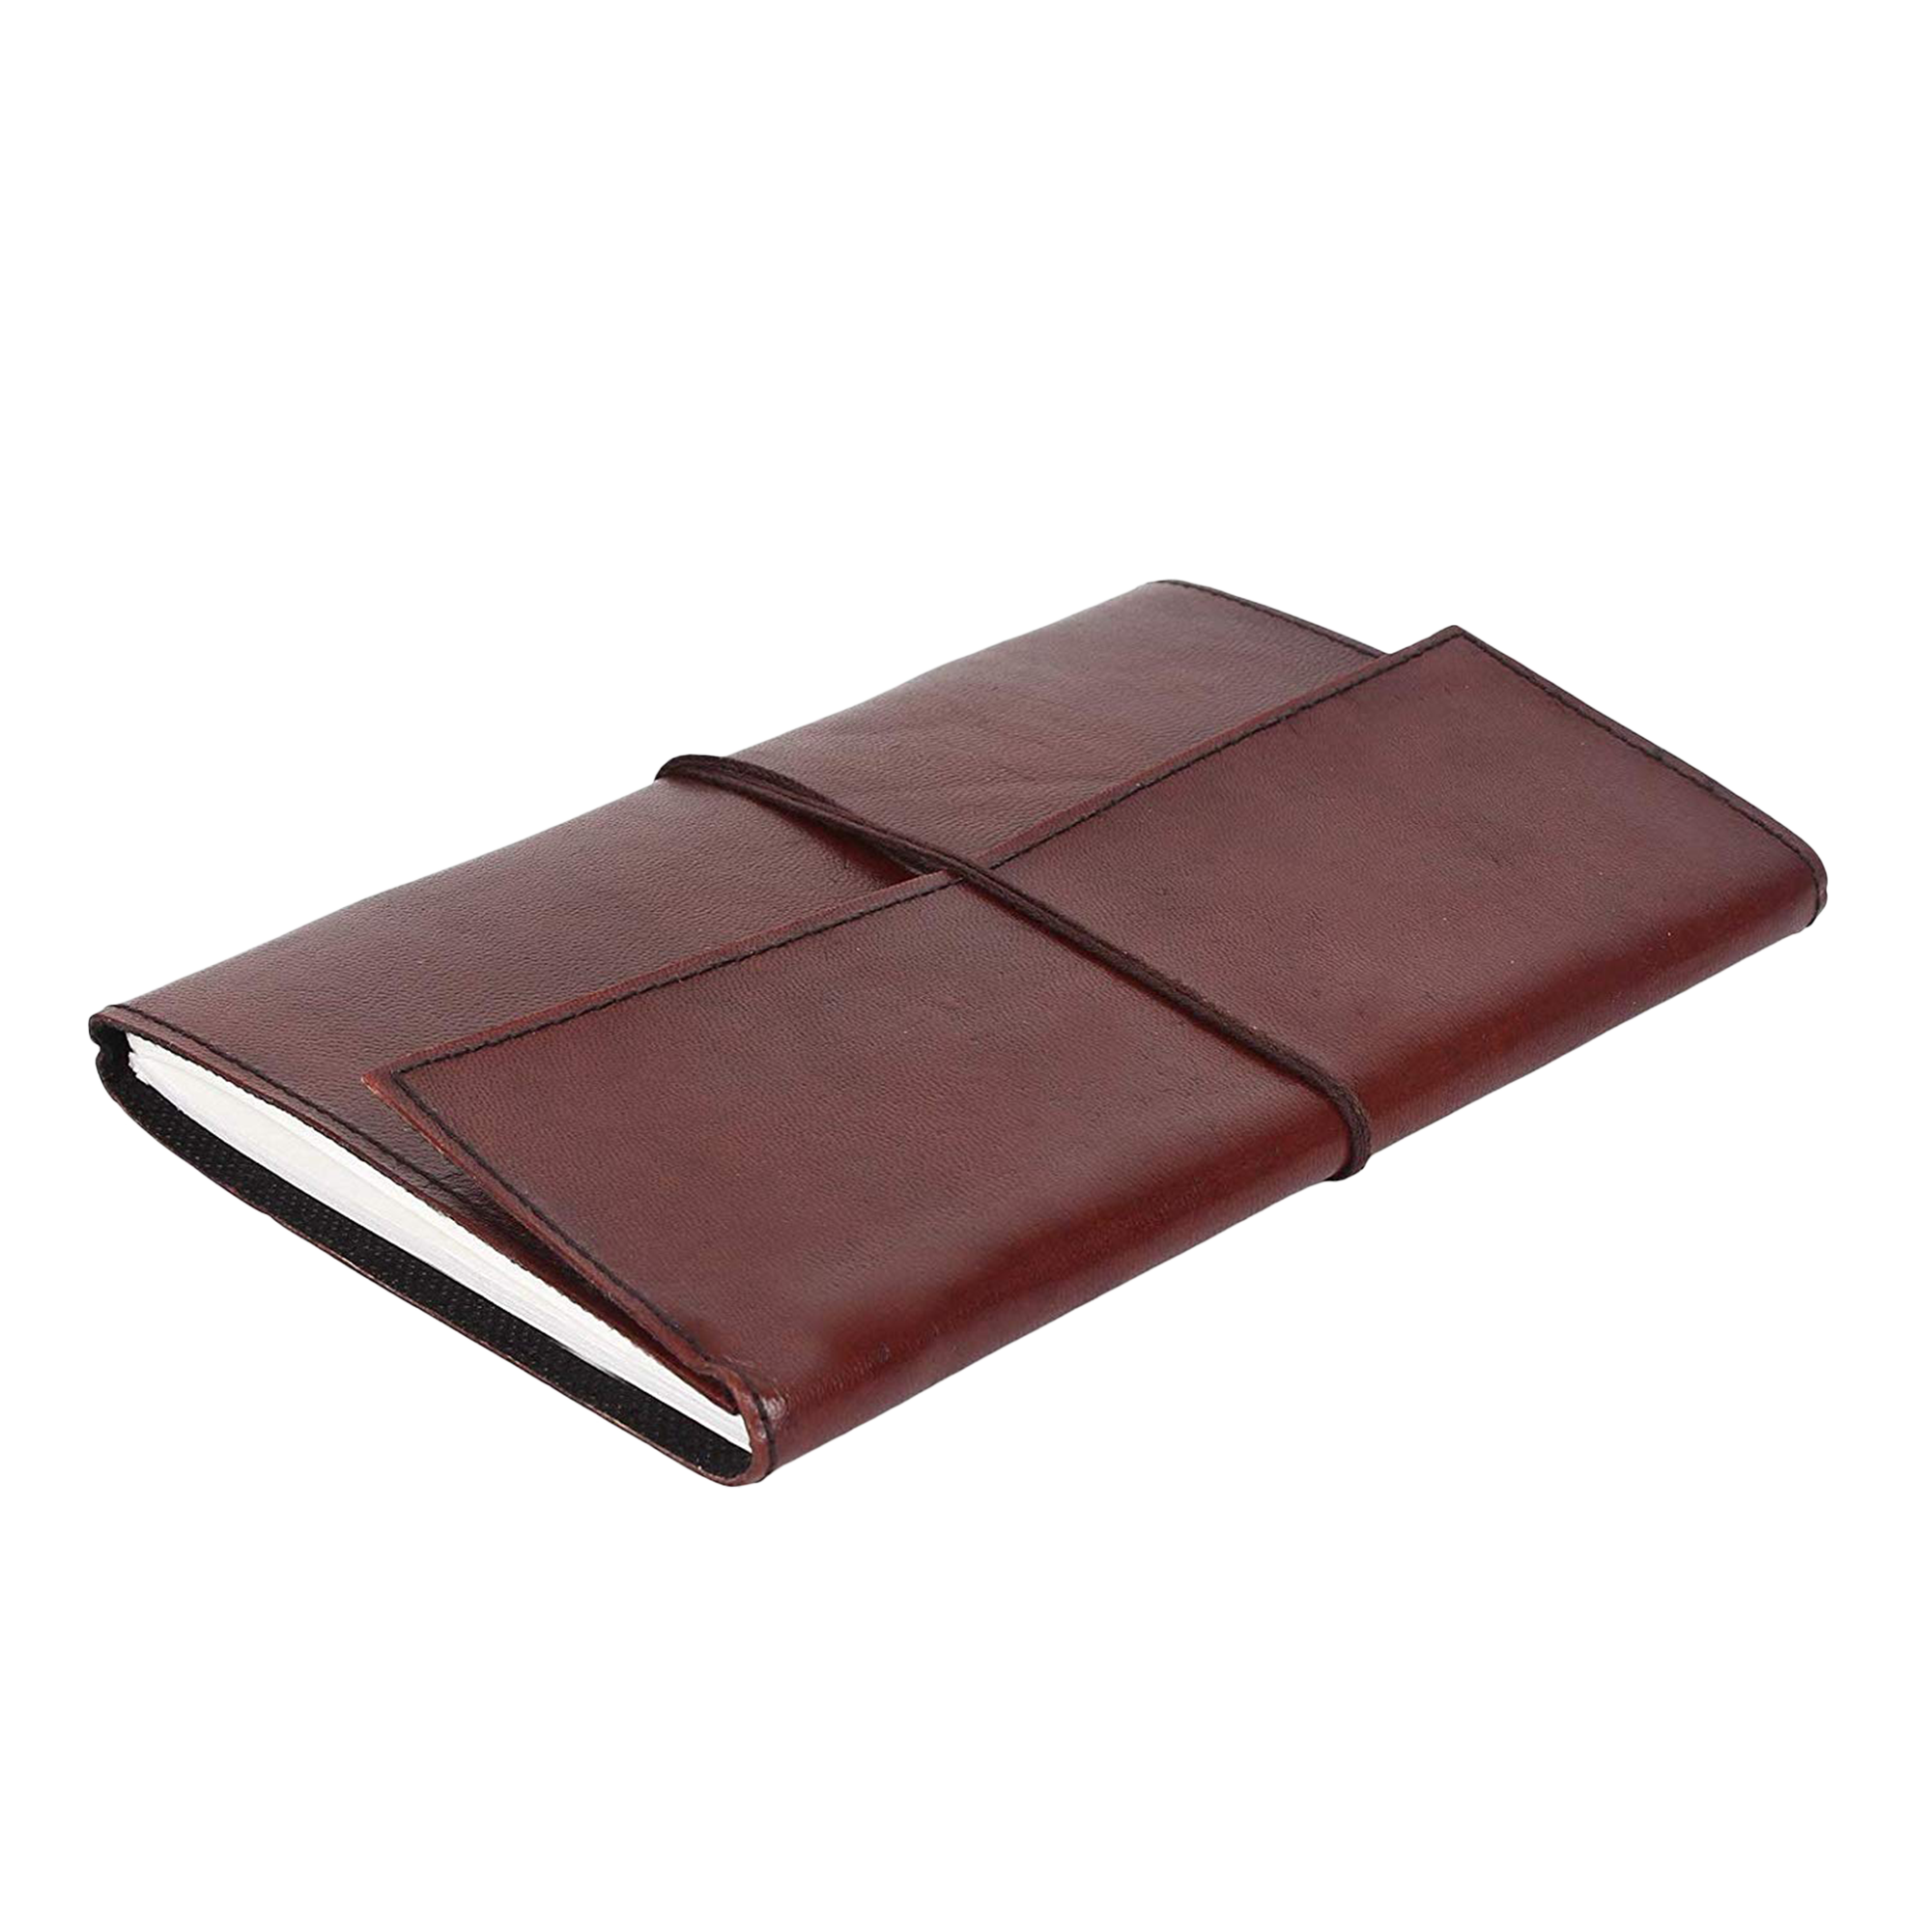 Handmade Genuine Leather Journal Notebook Travel Diary For Everyone